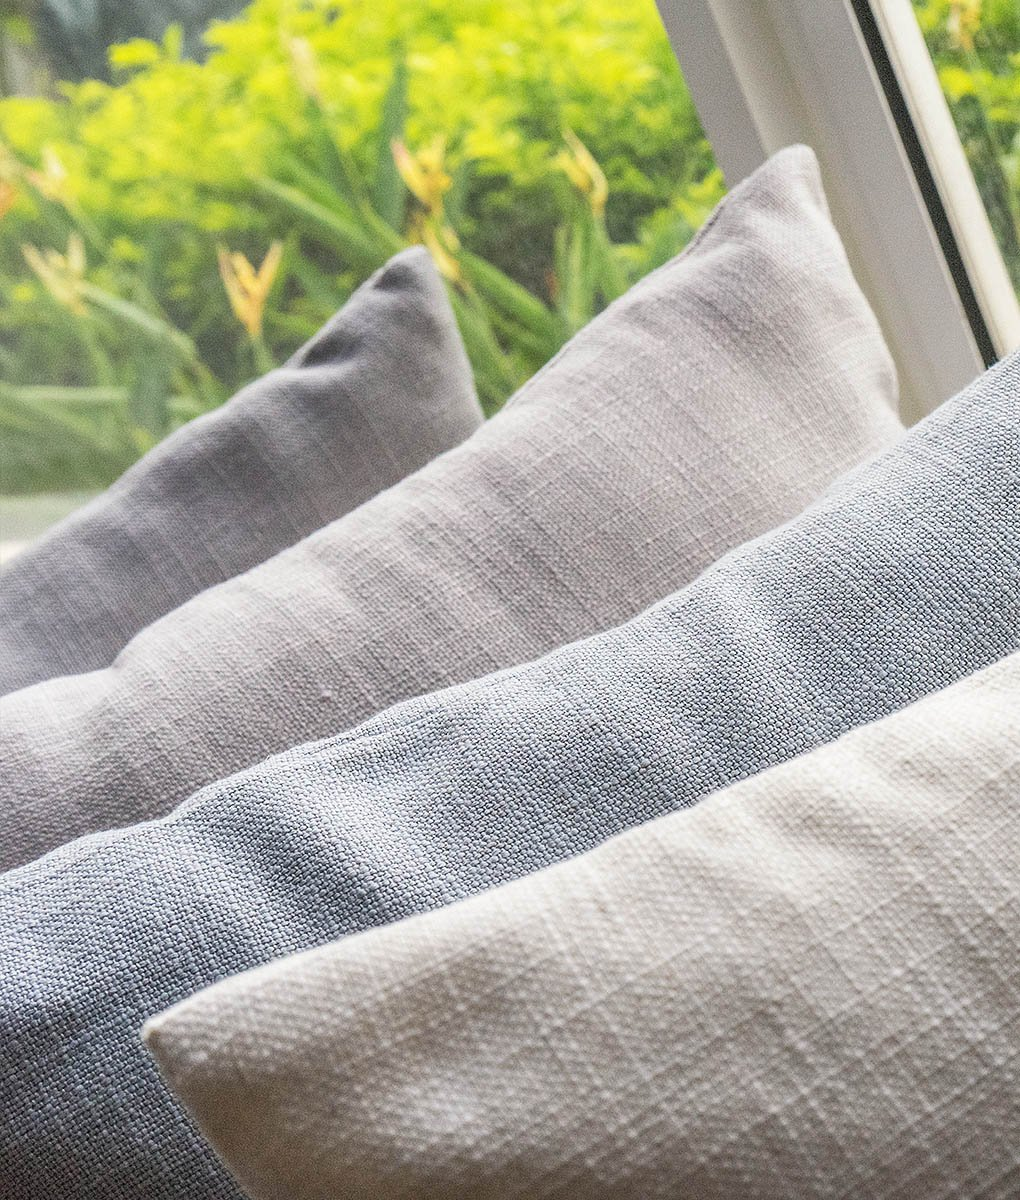 Linen Sofa Covers | Linen Couch Covers @ Comfort Works ...